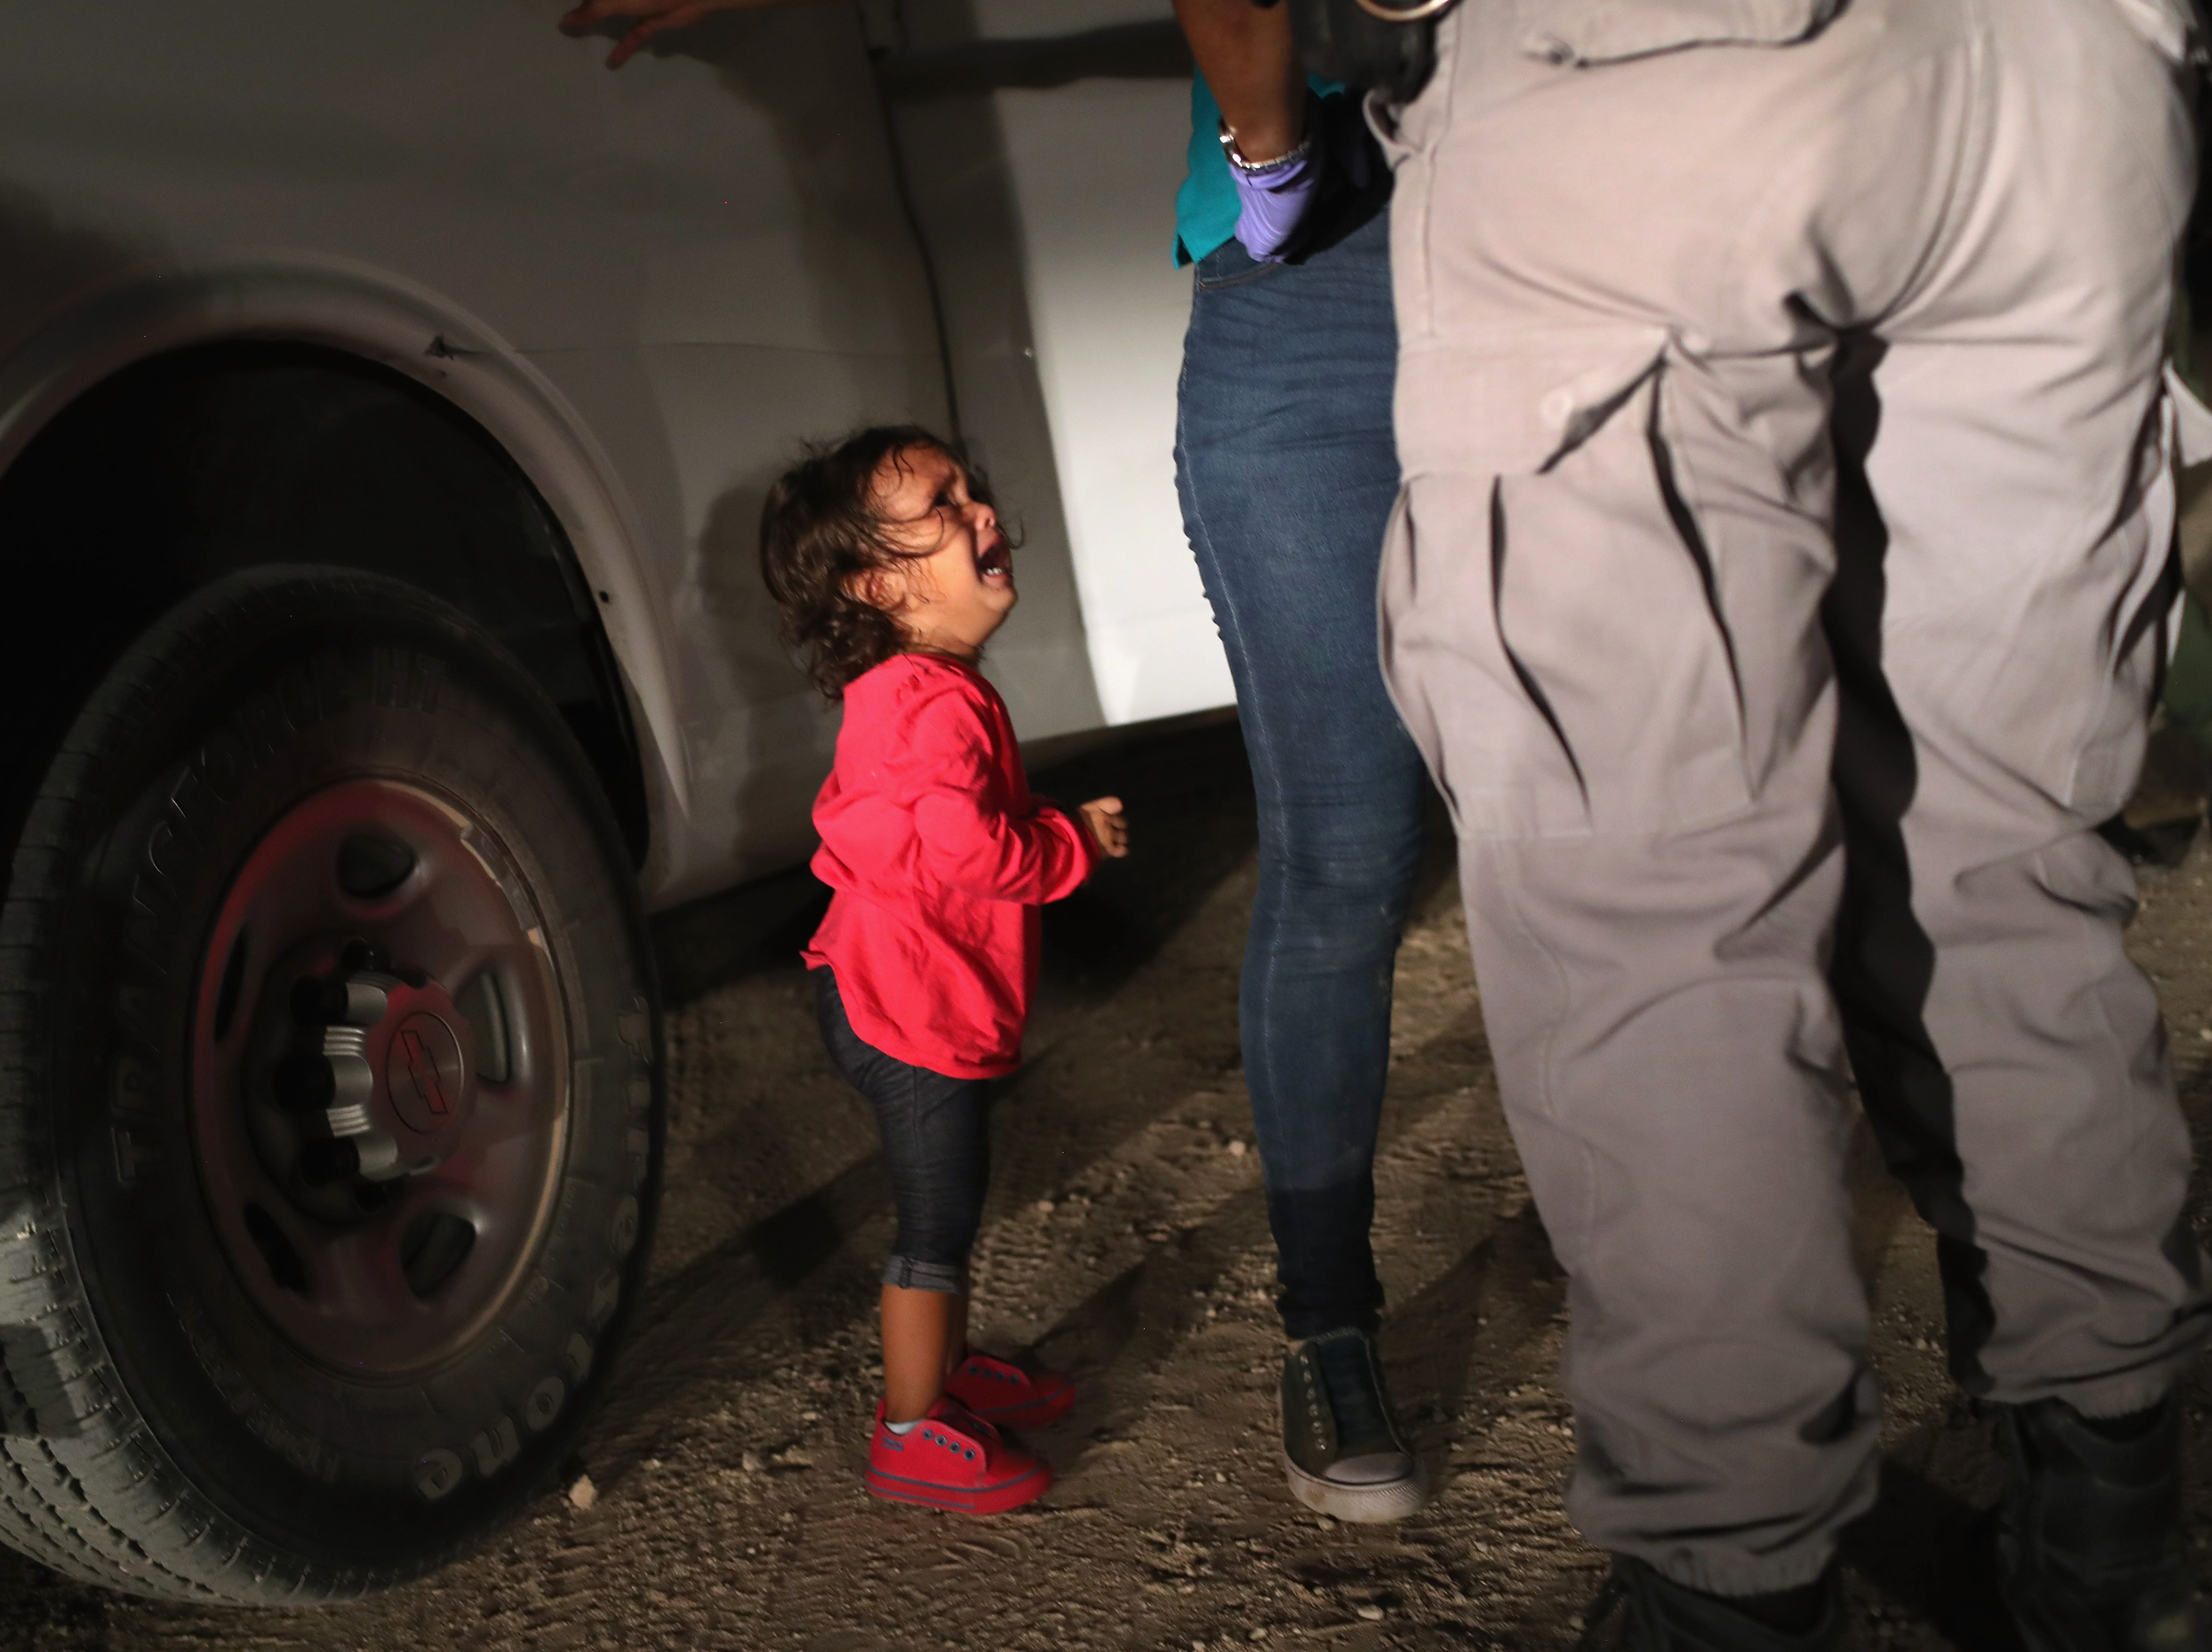 """June 12, 2018: A two-year-old Honduran asylum seeker cries as her mother is searched and detained near the U.S.-Mexico border in McAllen, Texas. The asylum seekers had rafted across the Rio Grande from Mexico and were detained by U.S. Border Patrol agents before being sent to a processing center for possible separation. Customs and Border Protection (CBP) is executing the Trump administration's """"zero tolerance"""" policy towards undocumented immigrants."""